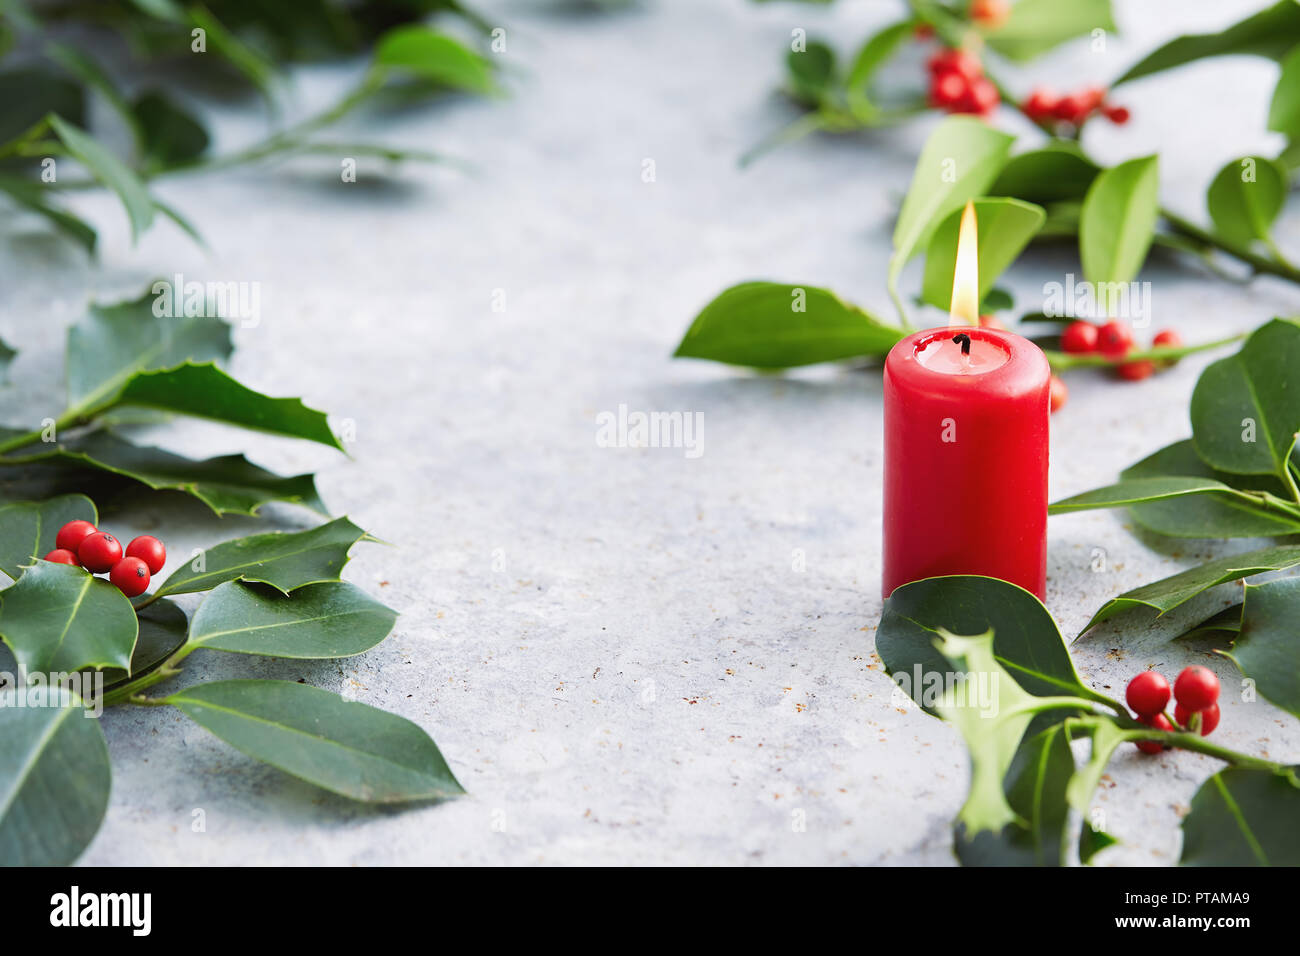 christmas decorations candle with evergreen decorations holly leaves with red berries